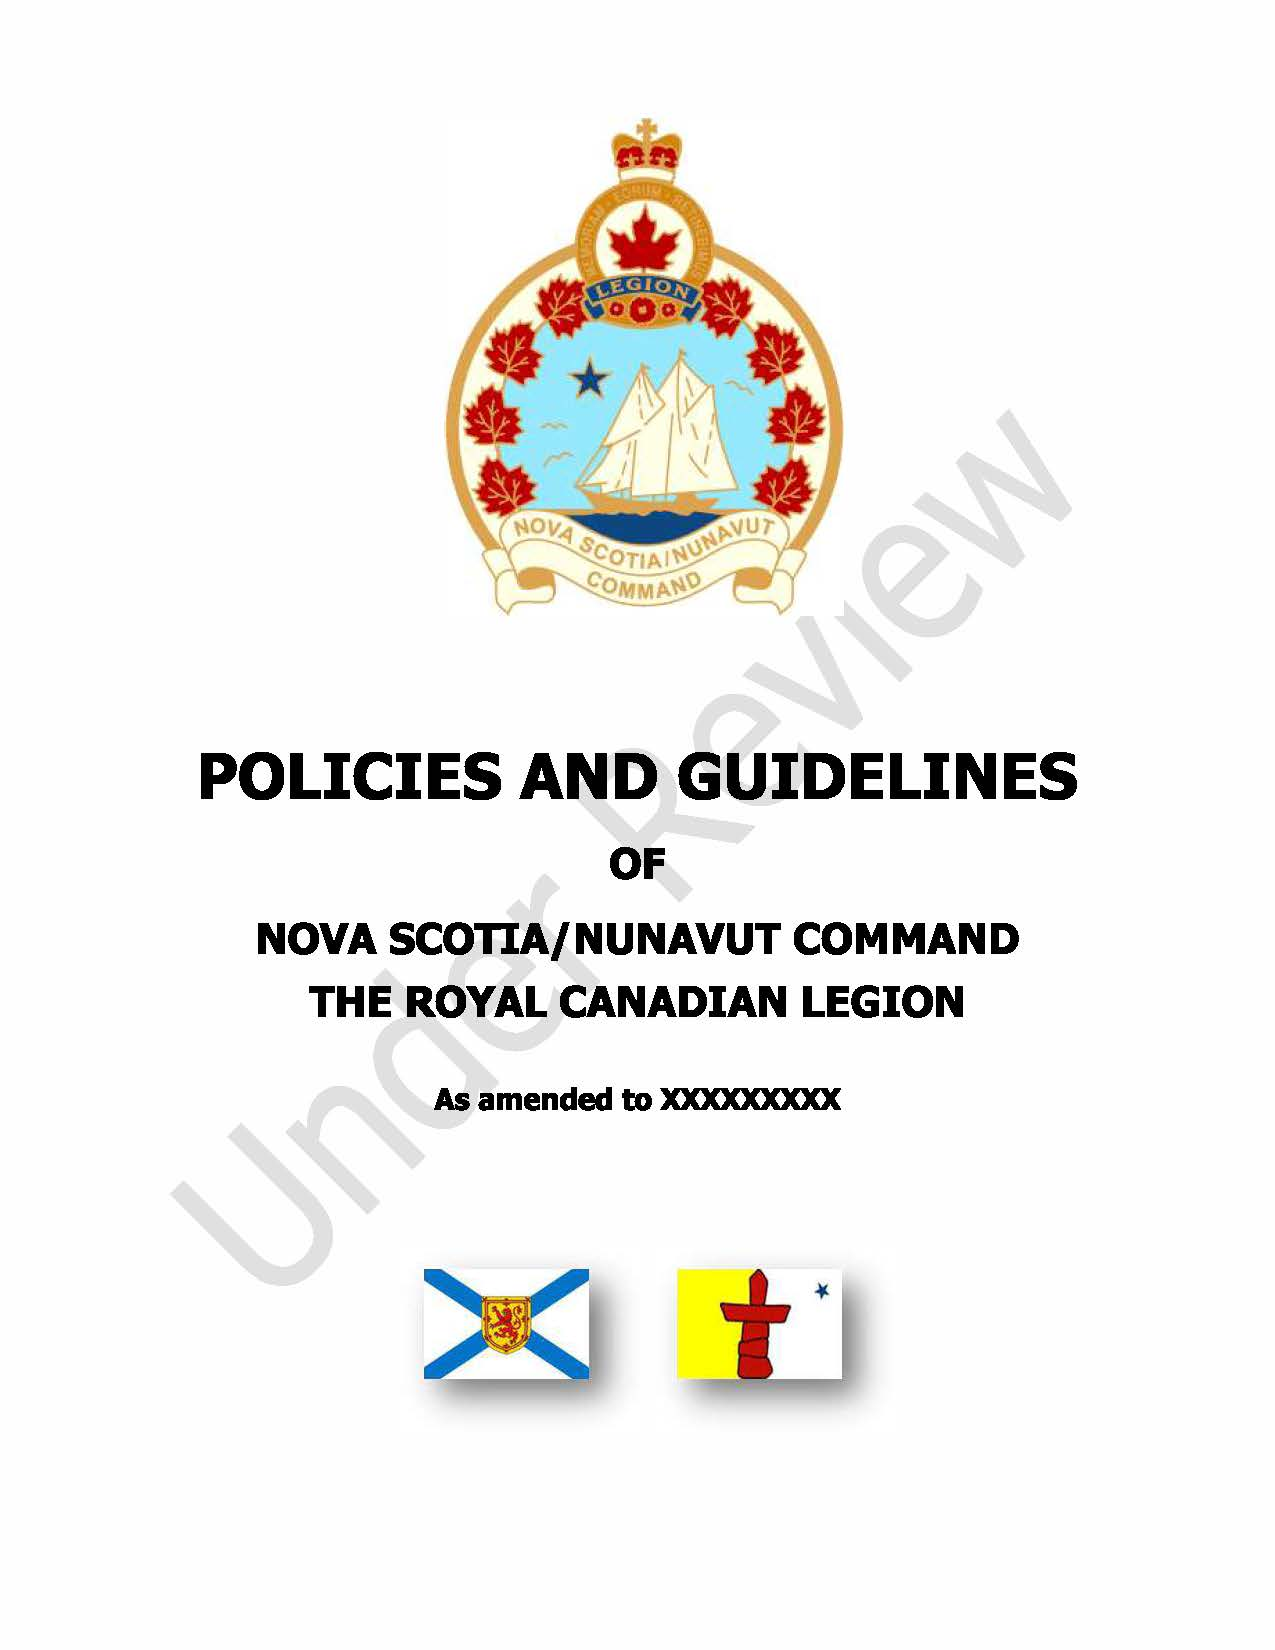 POLICY AND GUIDELINES BOOK Cover Page for Website